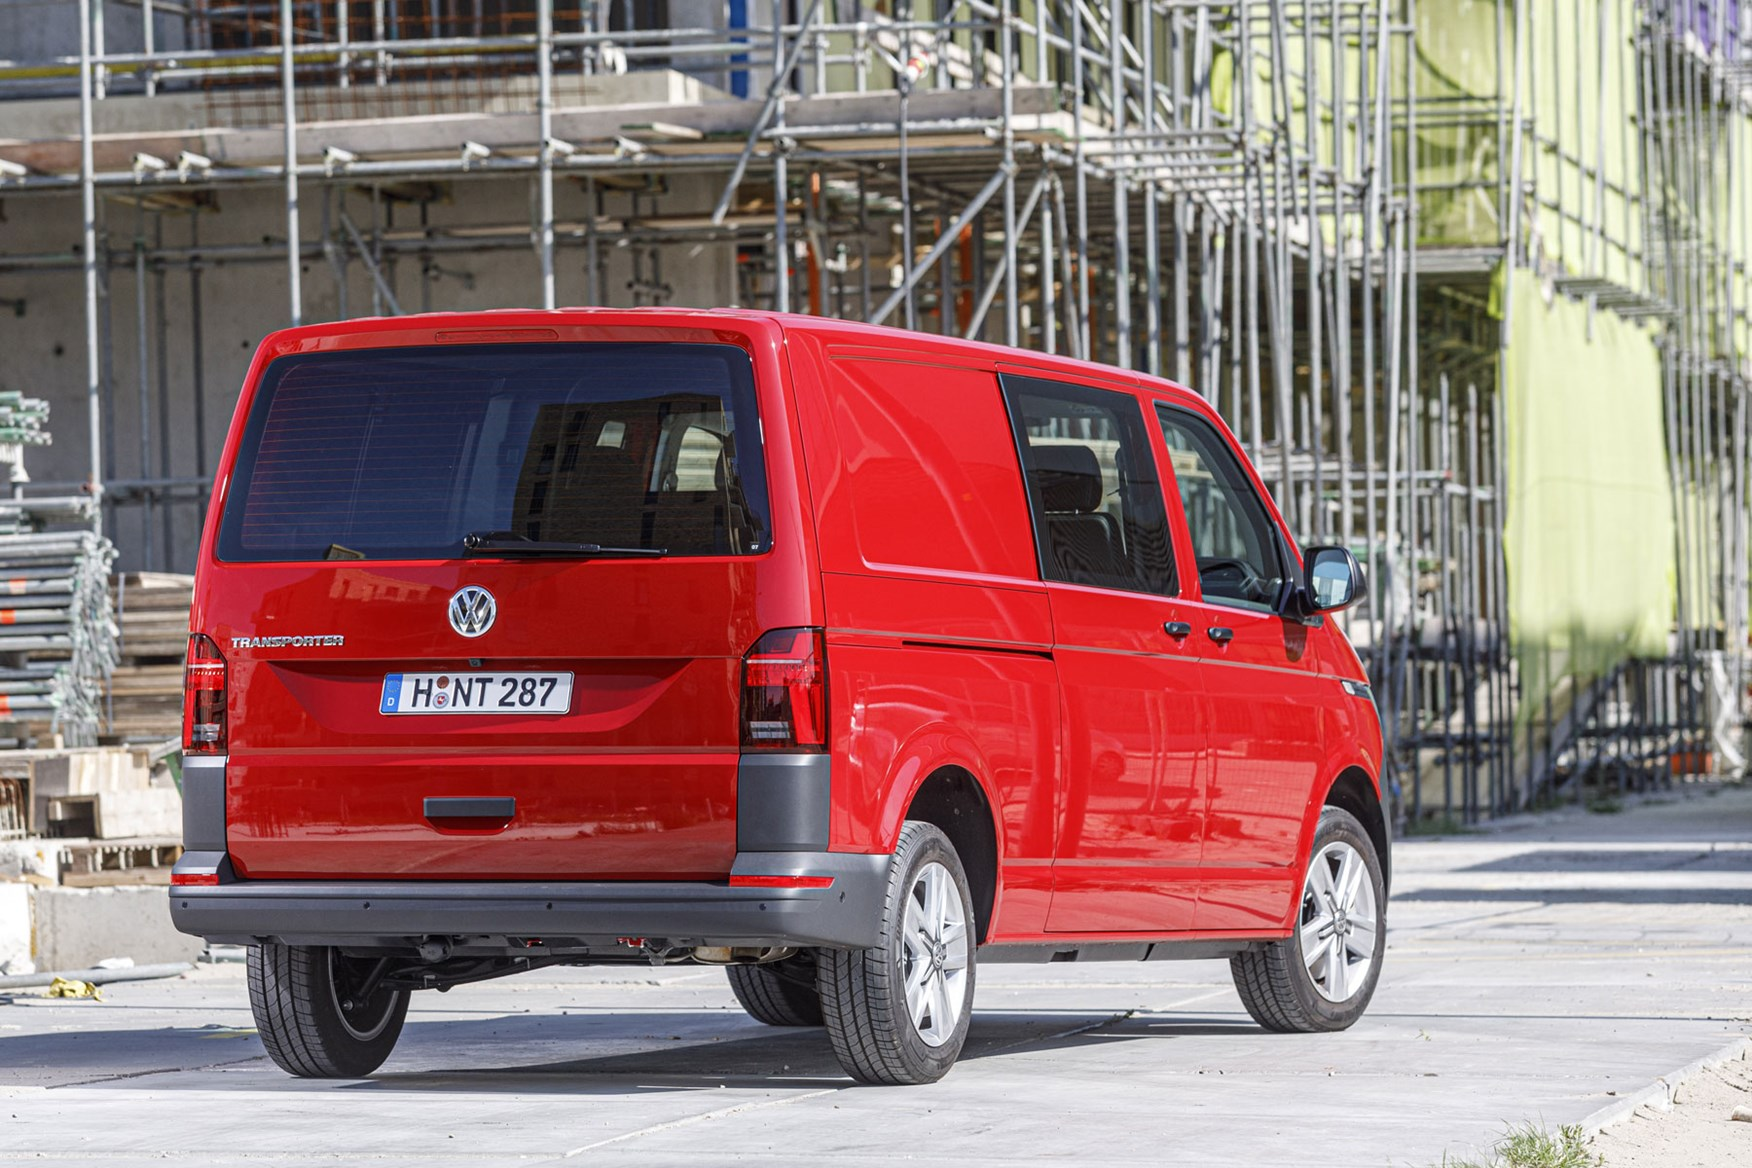 VW Transporter review - T6.1 2019 facelift, rear view, LWB kombi, red